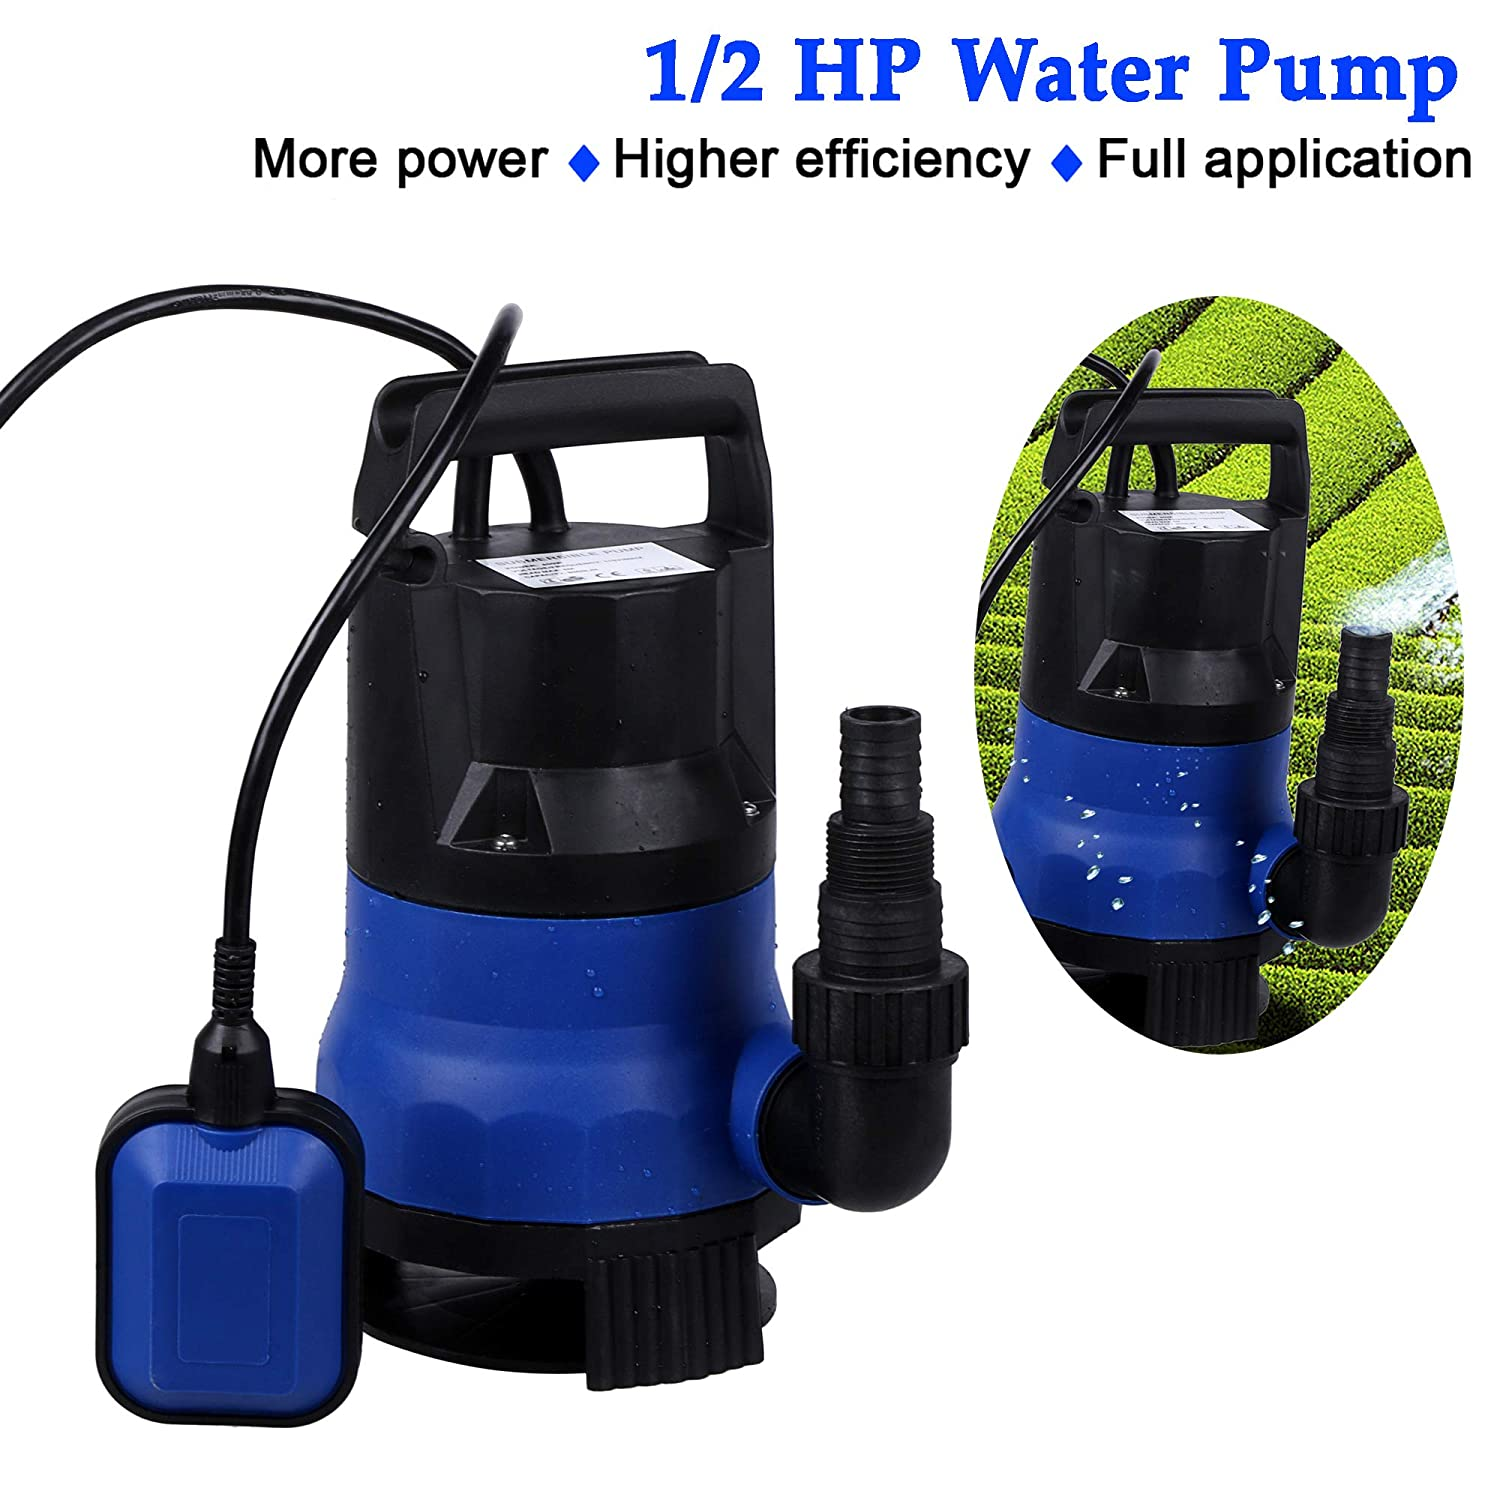 1 HP Sump Pumps Submersible Transfer Water Pump Electric Pool Pump Flood Drain Garden Pond Water Pressure Pump Automatic ON//OFF